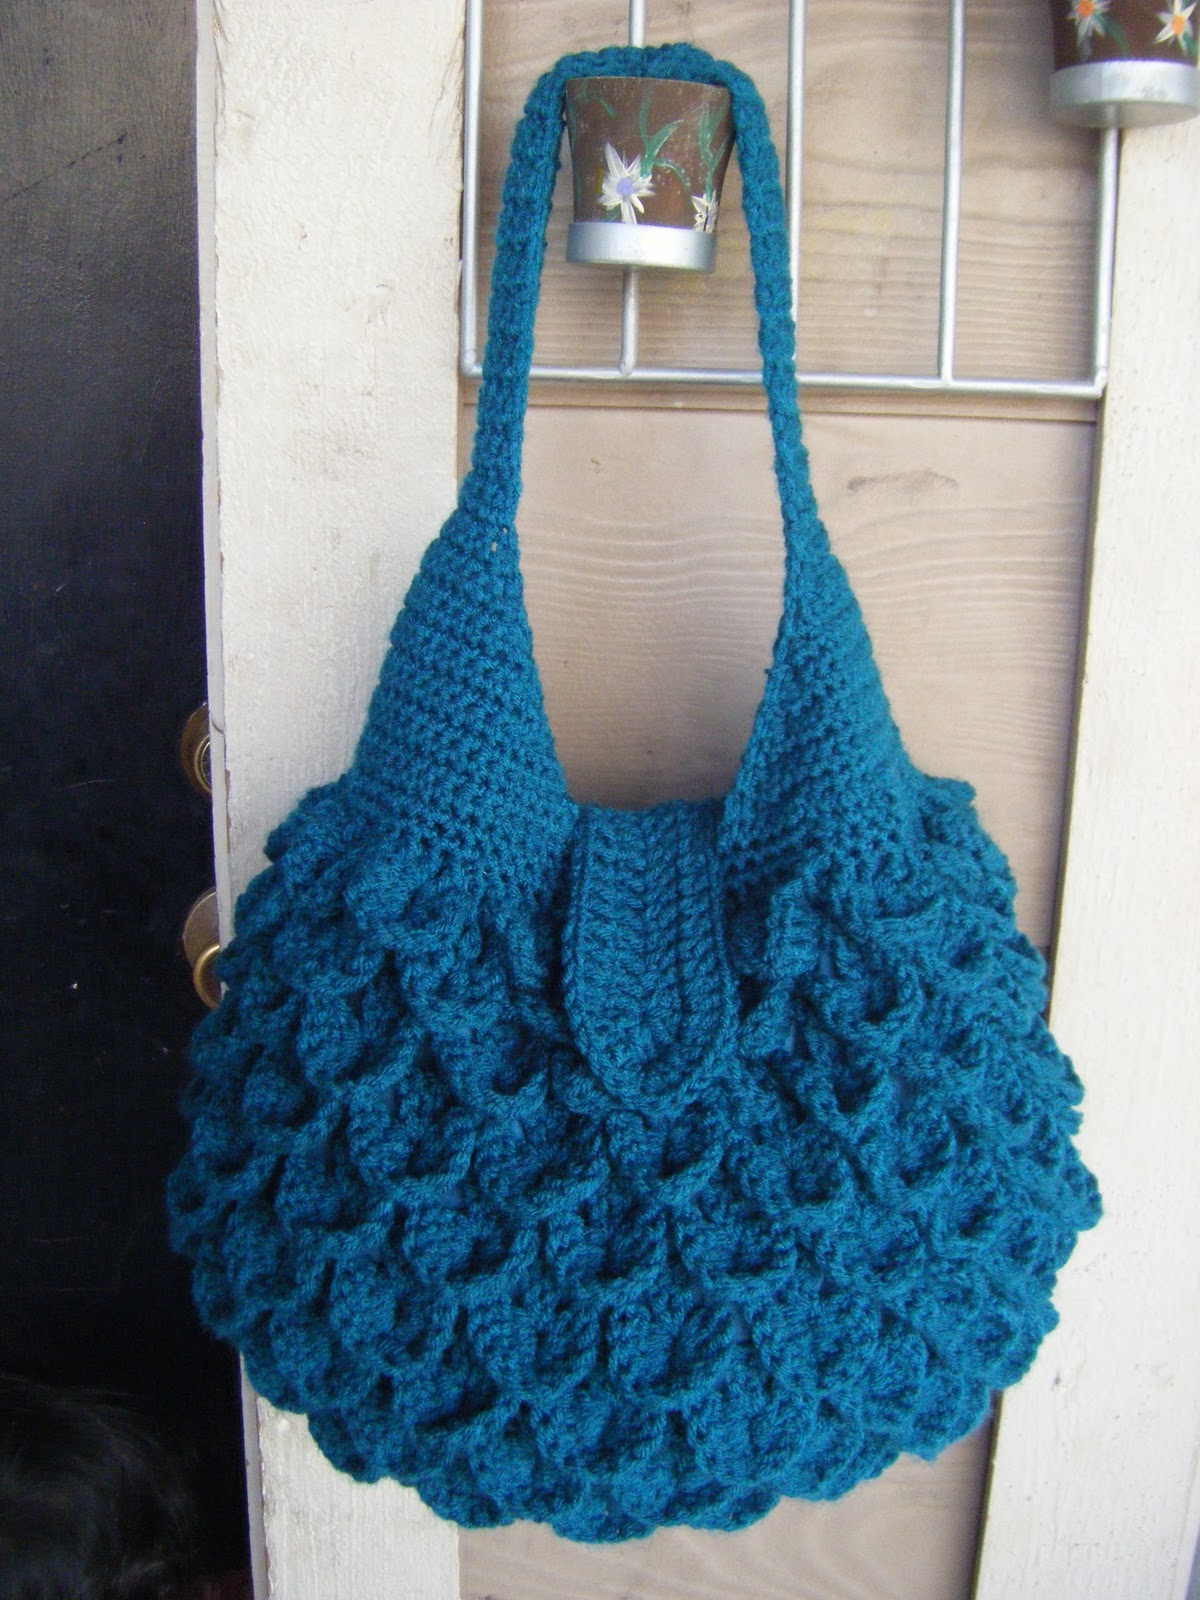 Crochet Bag Patterns Free Download : Hip Hobo Bag - Christmas Crafts, Free Knitting Patterns, Free